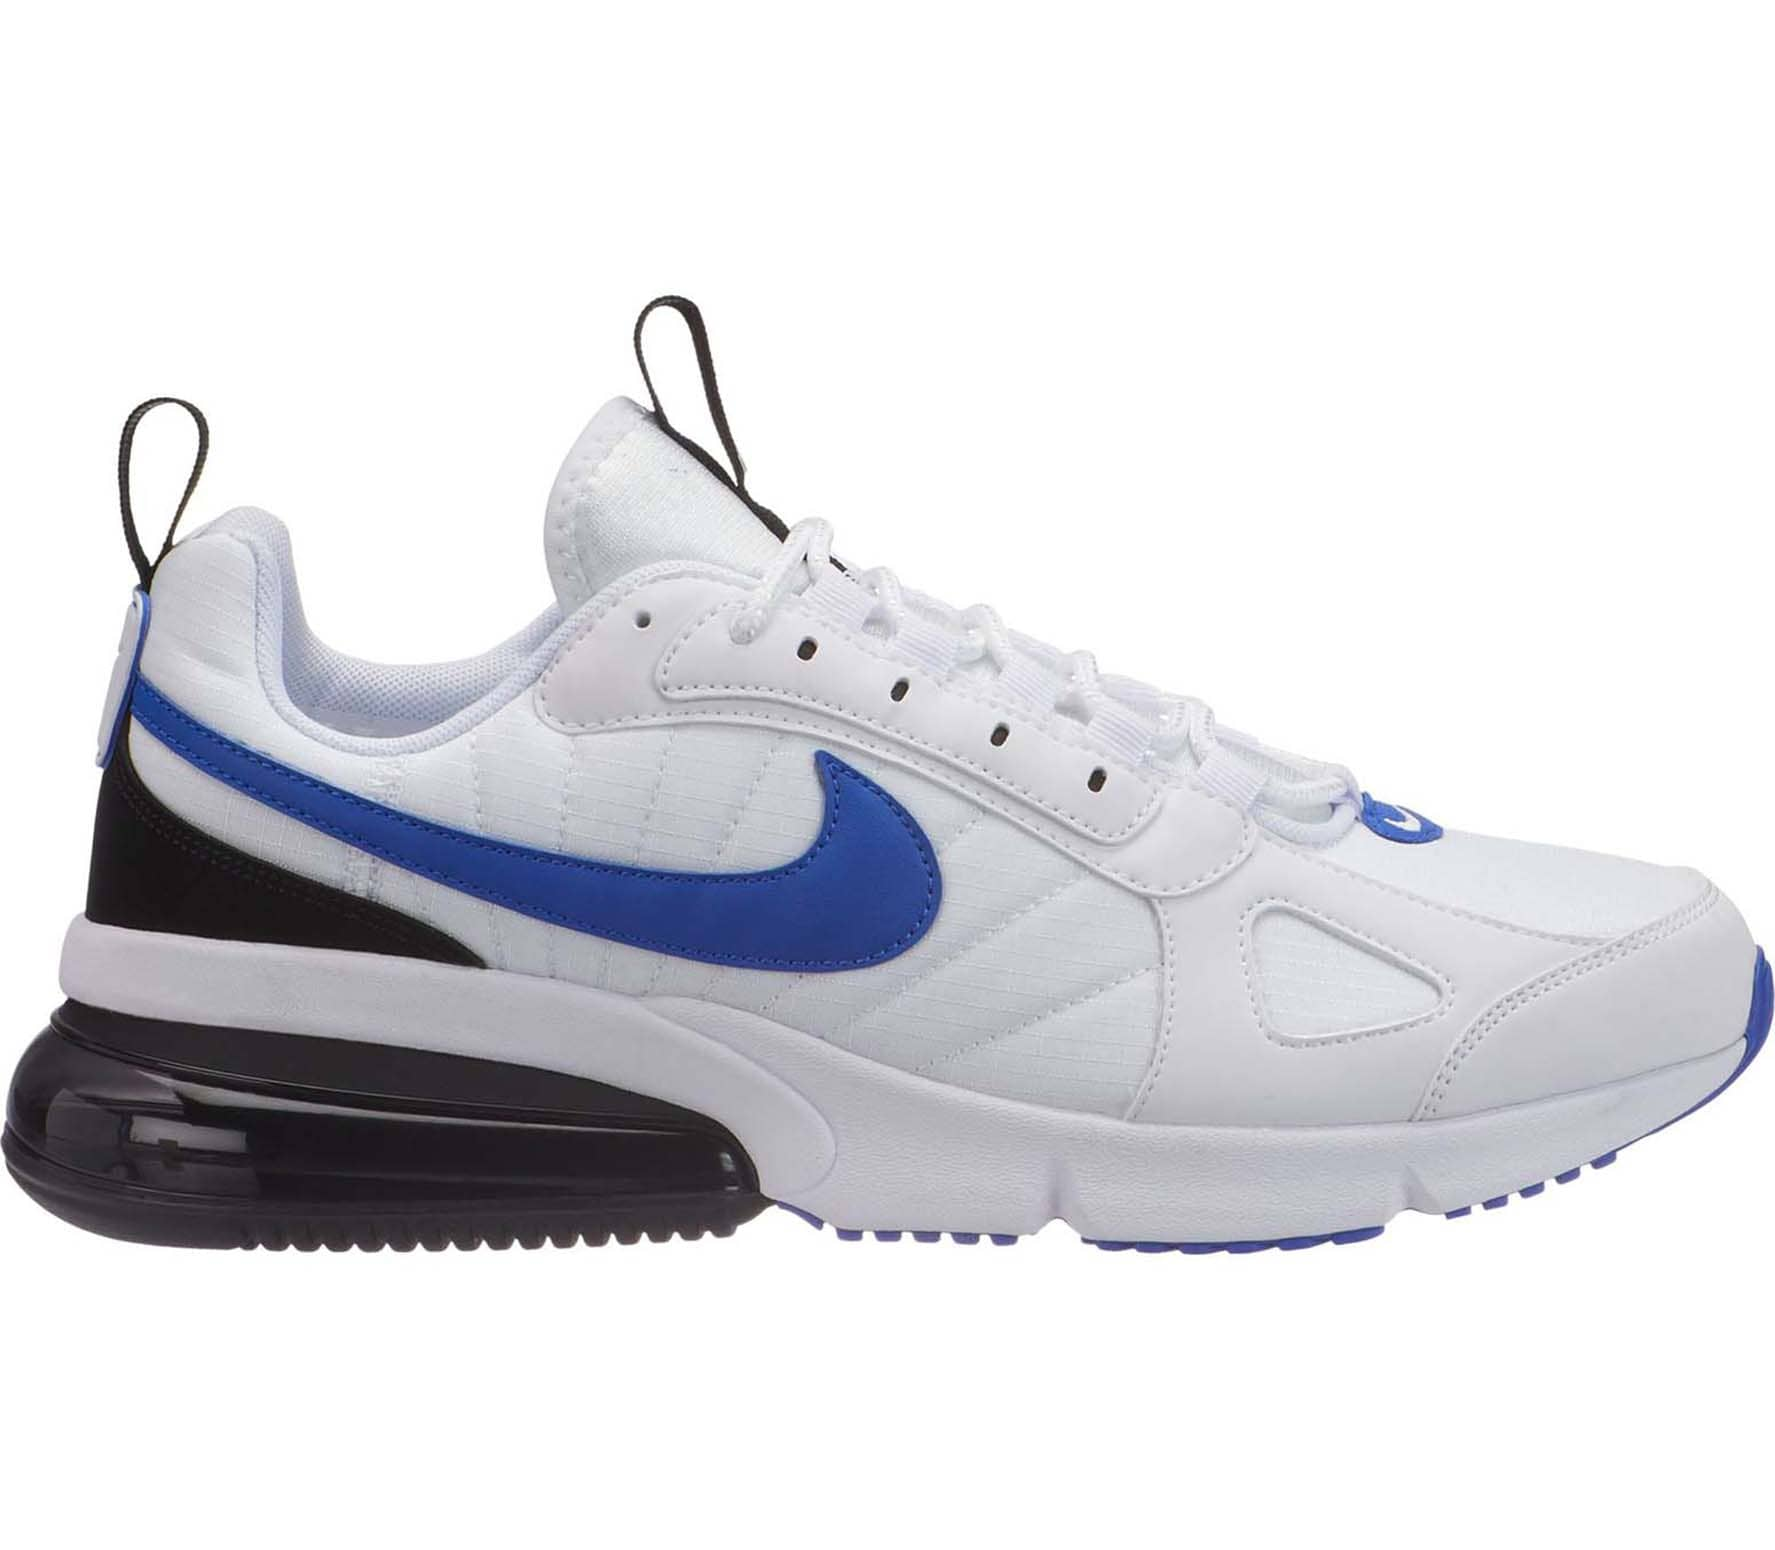 hot sale online a9903 d958e Nike Sportswear Air Max 270 Futura Men white